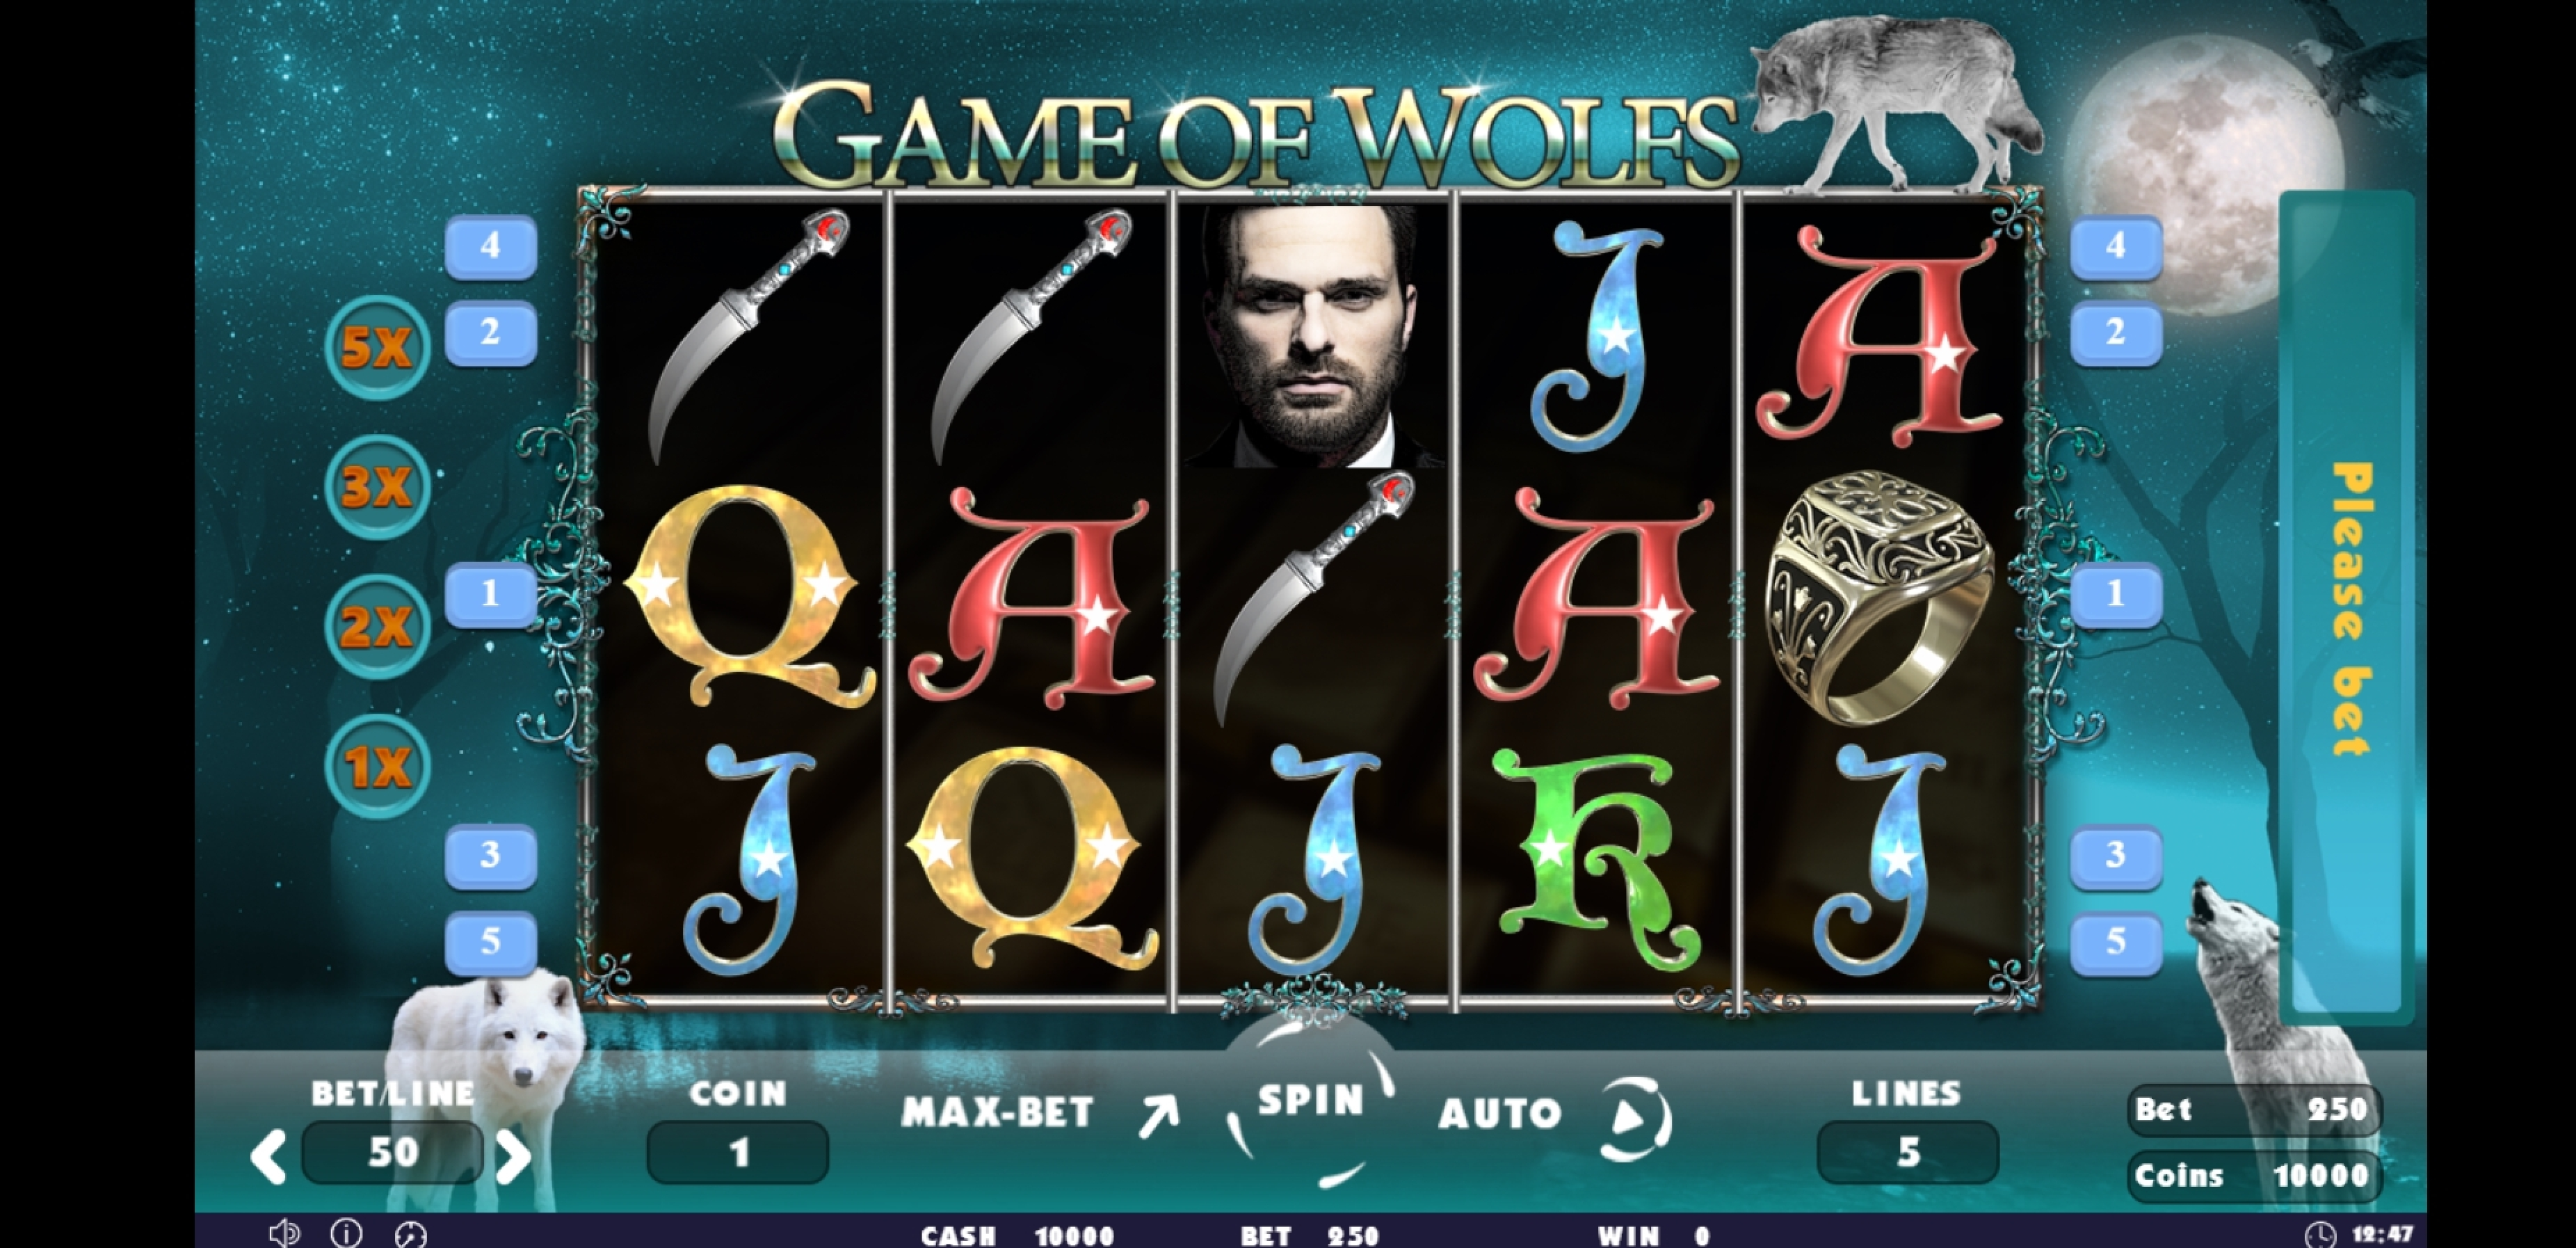 Reels in Game of Wolfs Slot Game by Others